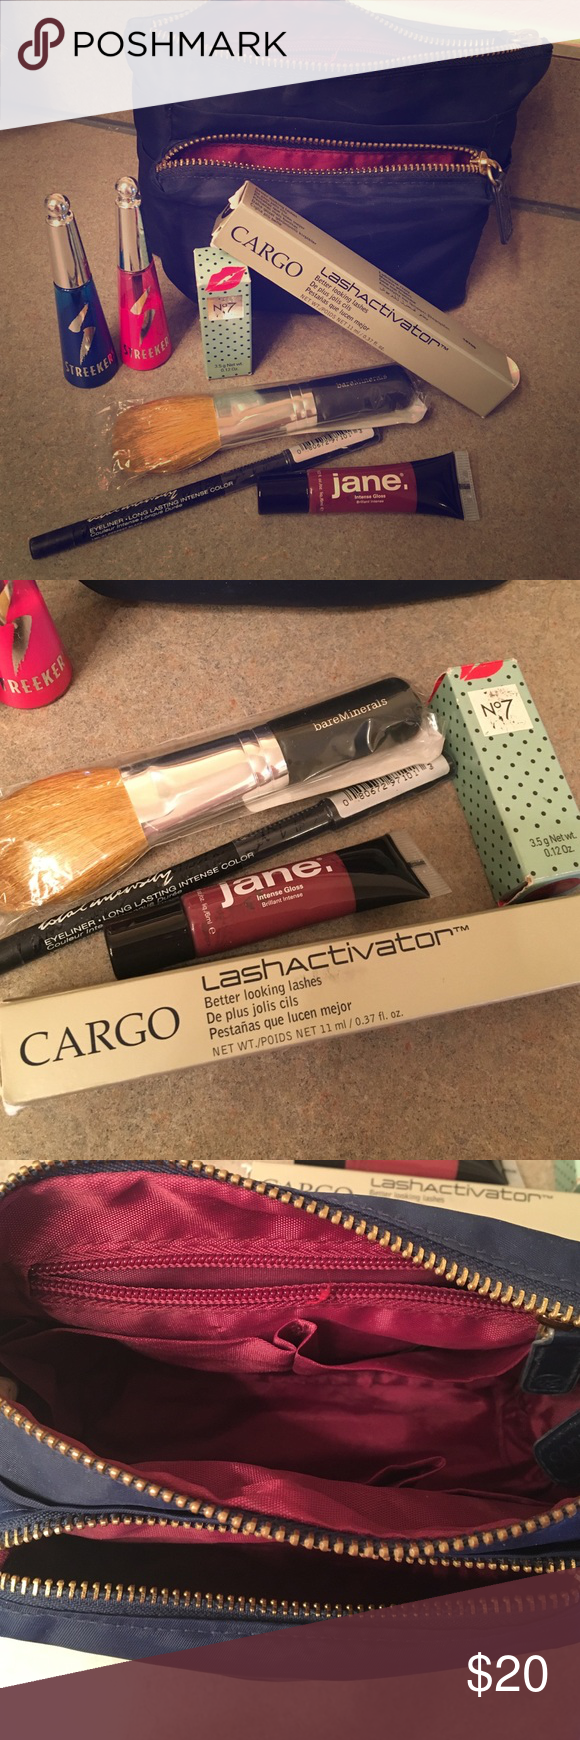 """Makeup Bag w/New Makeup! FREE gift included. Blue makeup bag with 7 pouches for storage. Brand new Cargo Lashactivator mascara (dark brown), one new total intensity black eyeliner, one Jane """"intense berry"""" gloss, one brand new Bare Minerals brush, brand new No7 Poppy king lipstick. 2 Streekers temporary hair highlighter (blue and pink). Additional surprise free gift included. Cheaper on Ⓜ️ercari bareMinerals Makeup"""